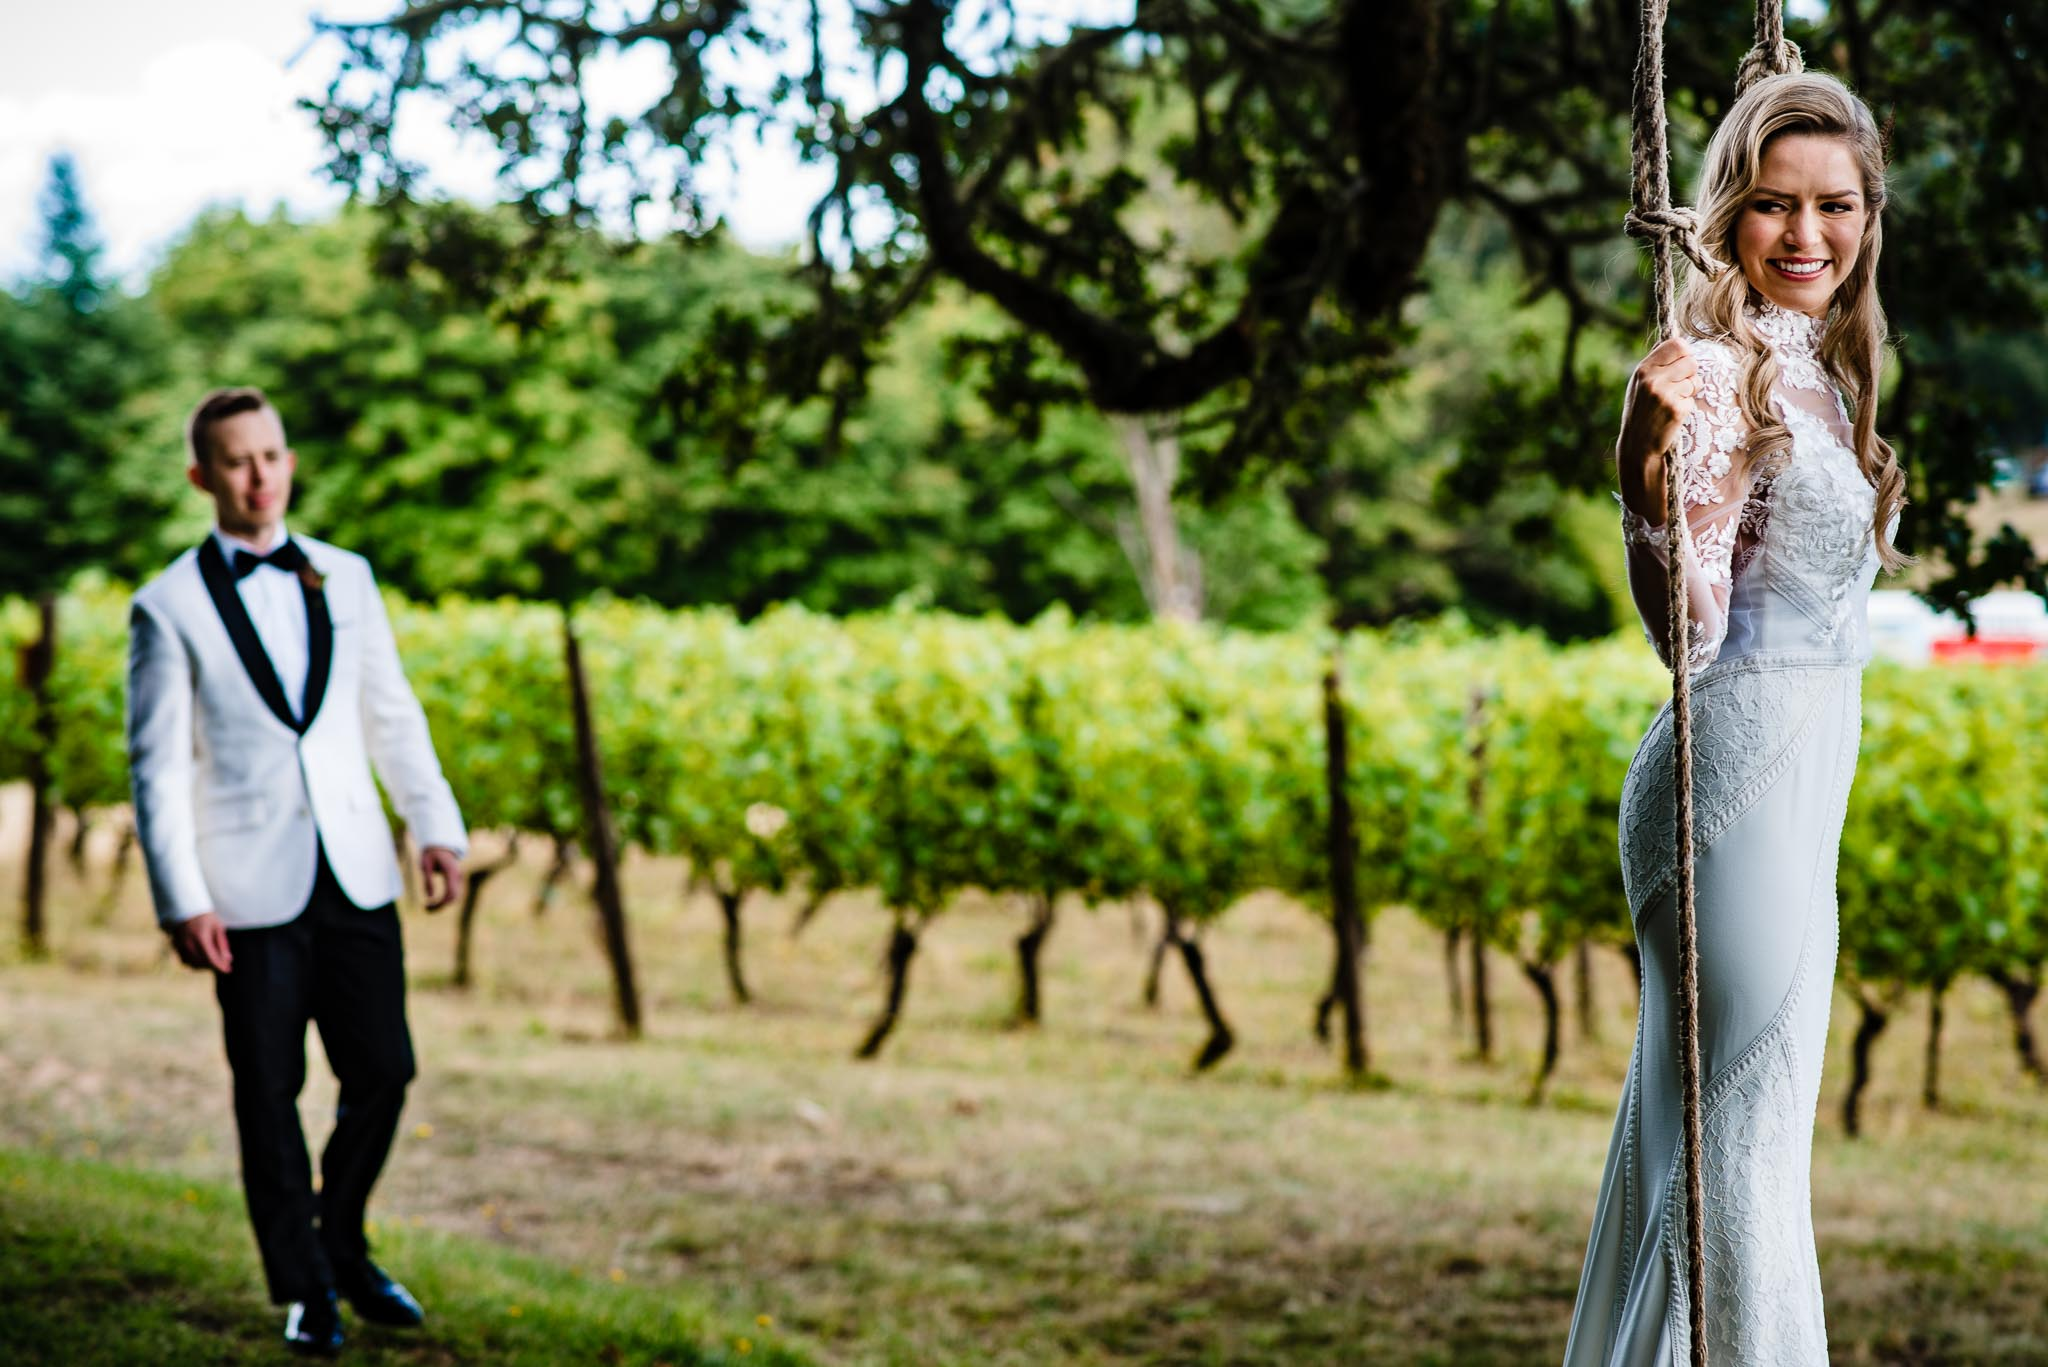 Bride and Groom on swing at Youngberg Hill Winery on their wedding day